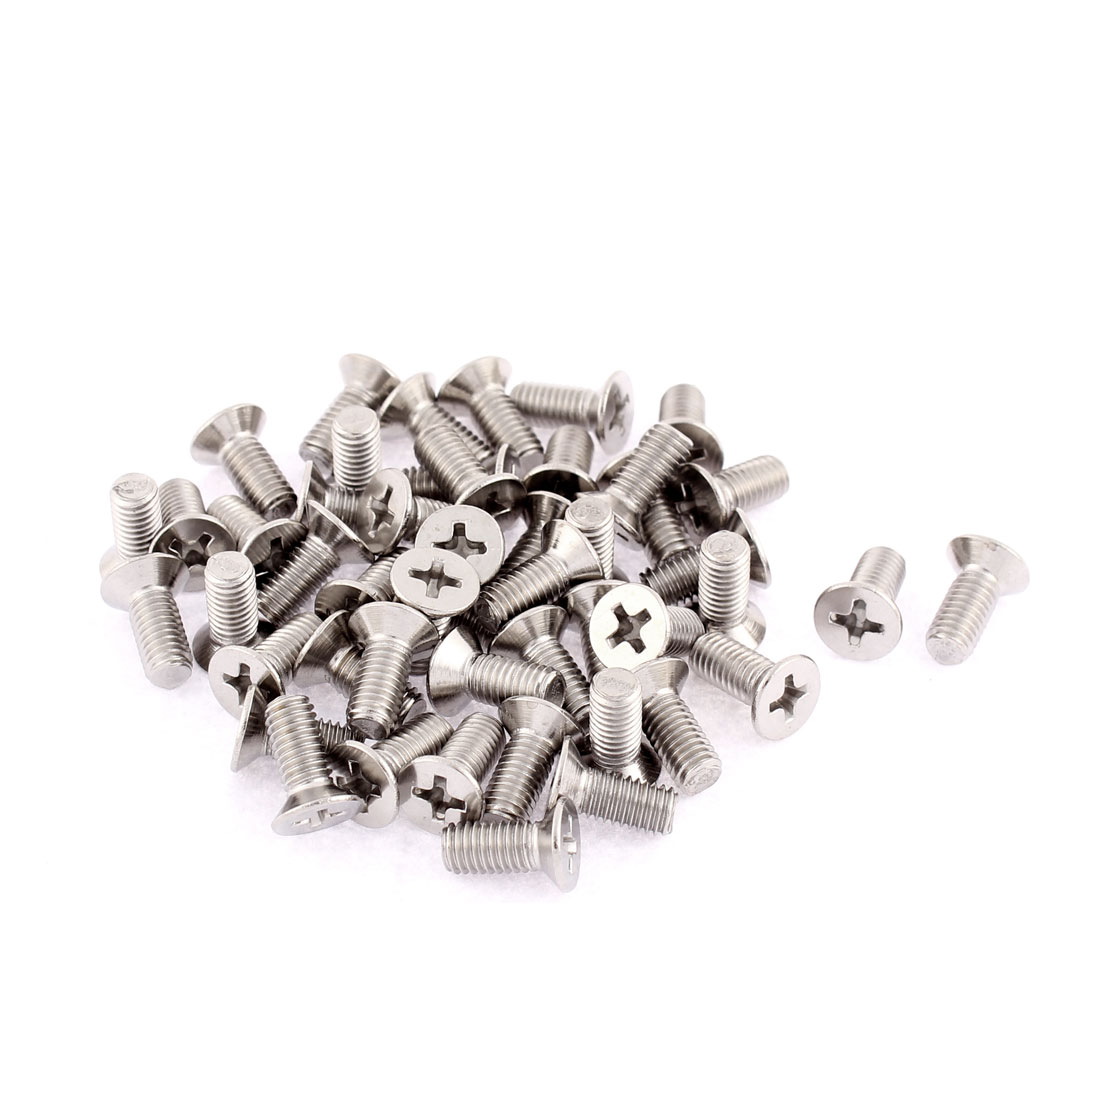 M5 x 12mm Phillips Socket Stainless Steel Countersunk Bolts Screws 50 Pcs